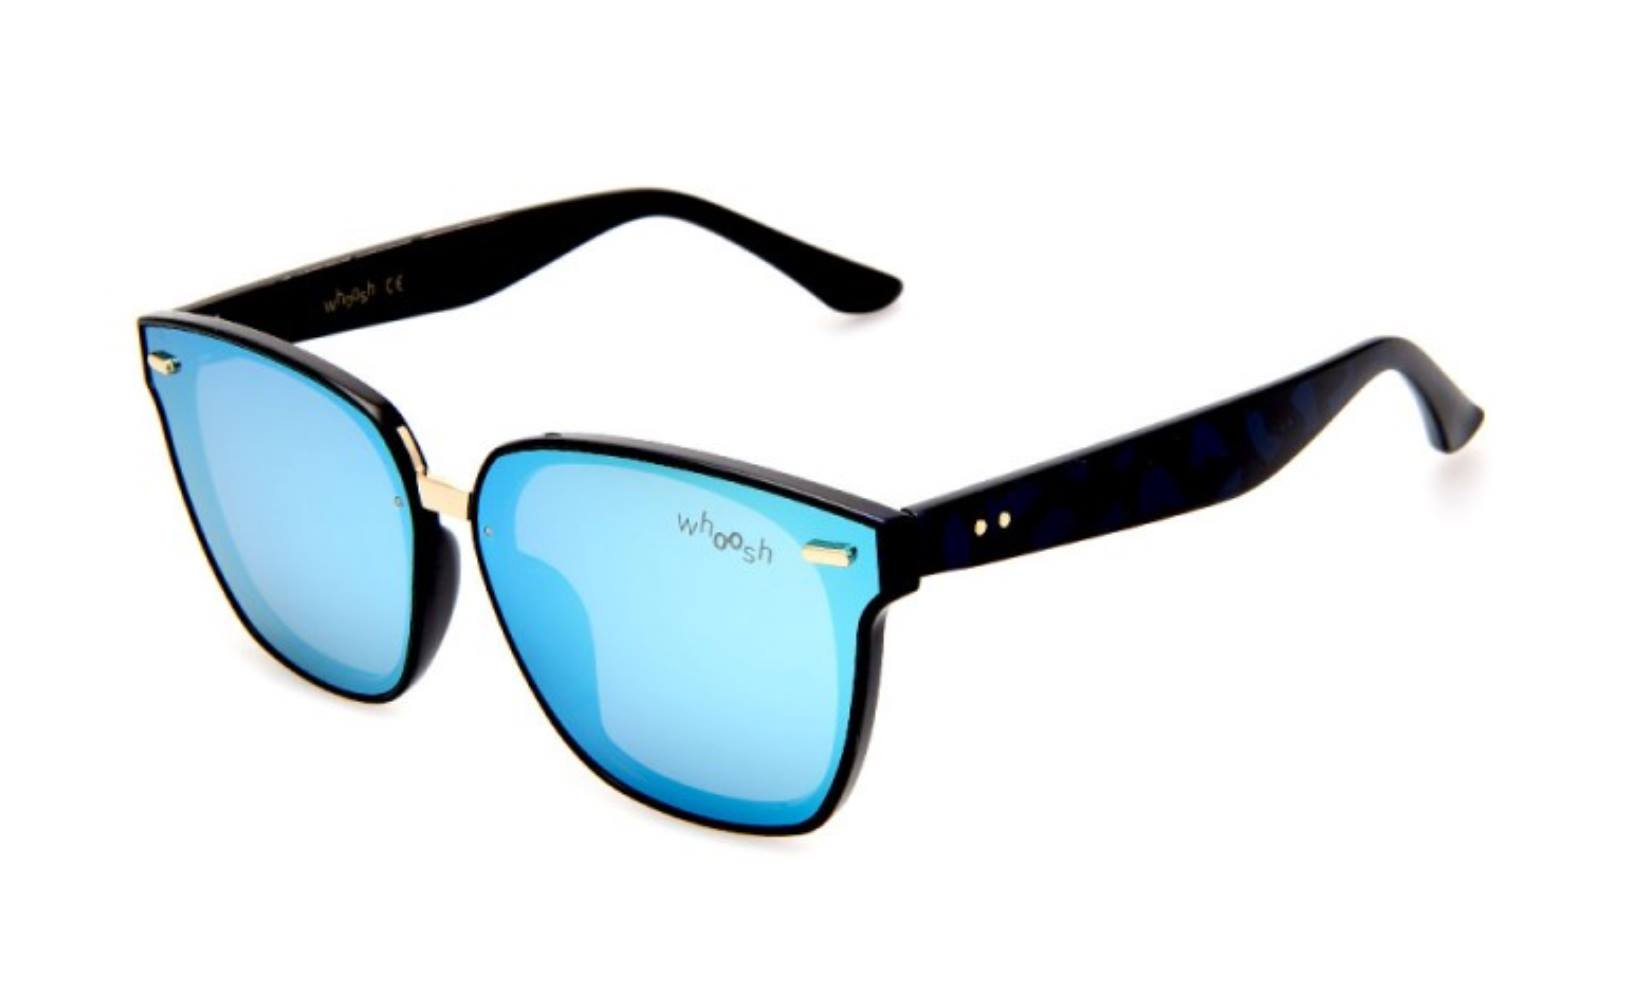 Awesome Looking Sunglasses